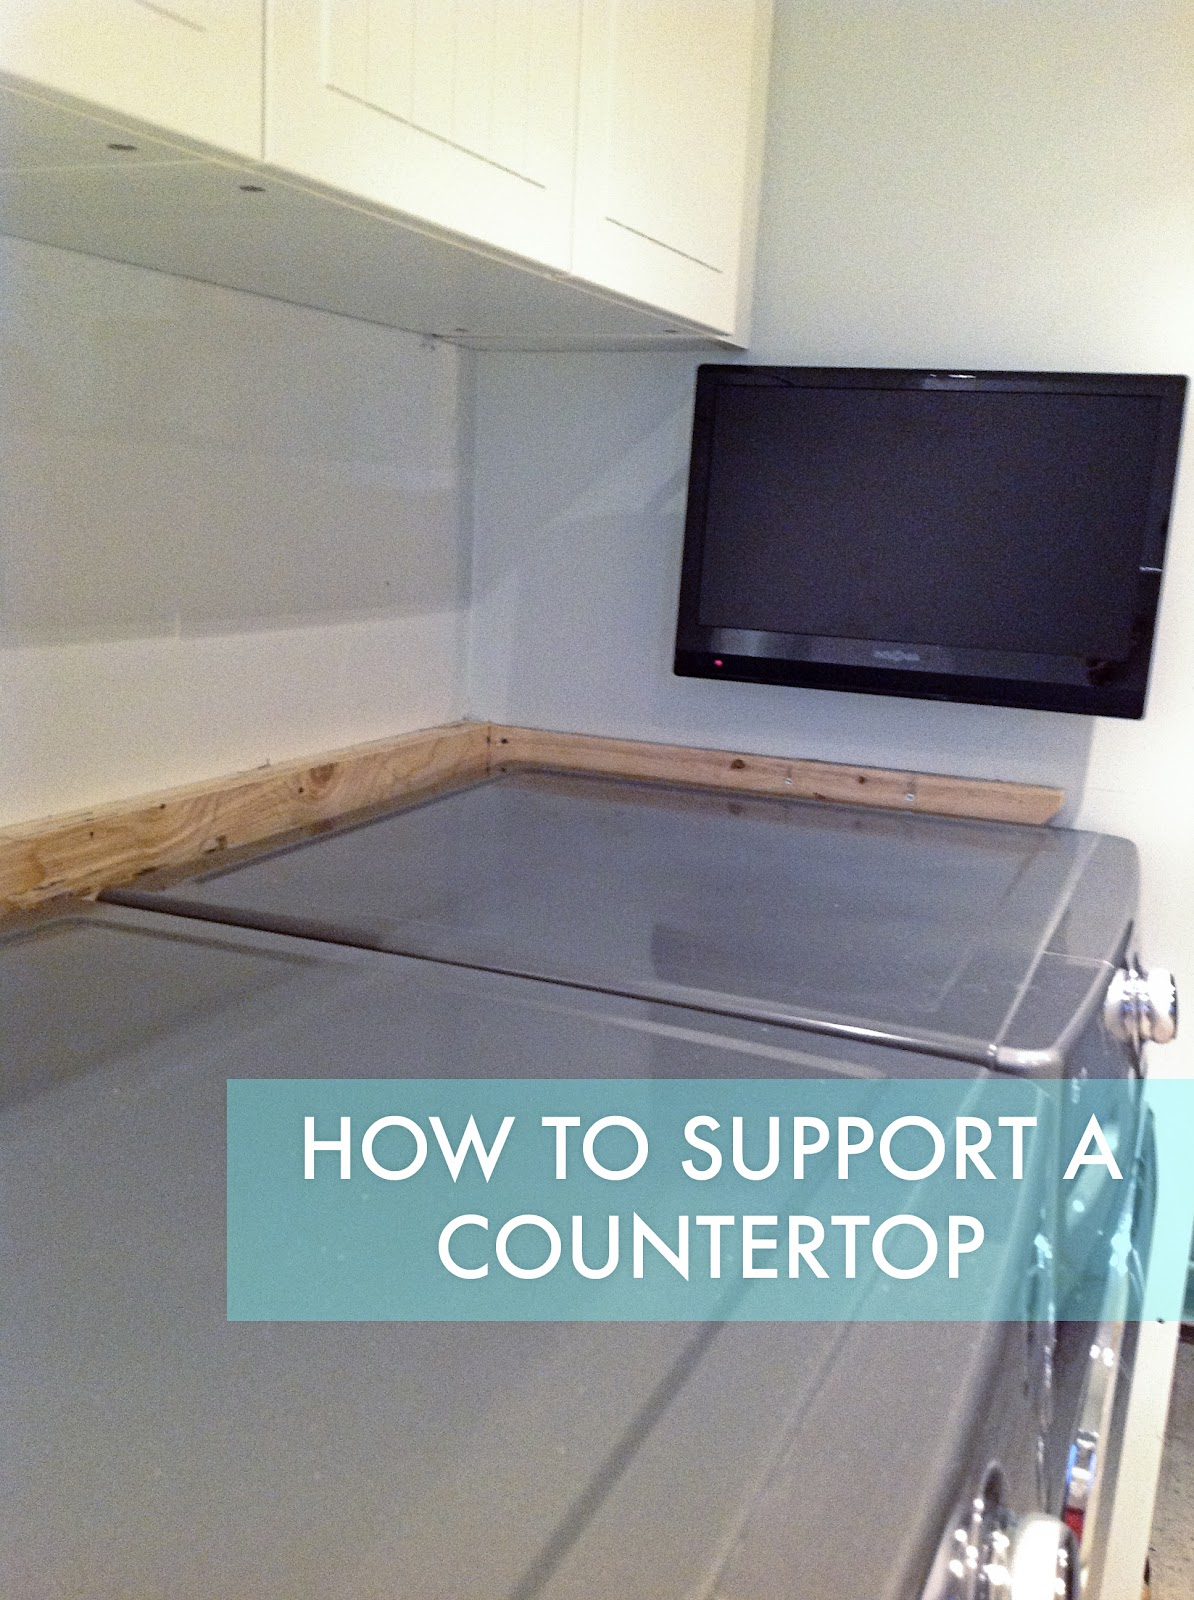 Laundry Room Countertop Material How To Support A Laundry Room Countertop Over A Washer And Dryer